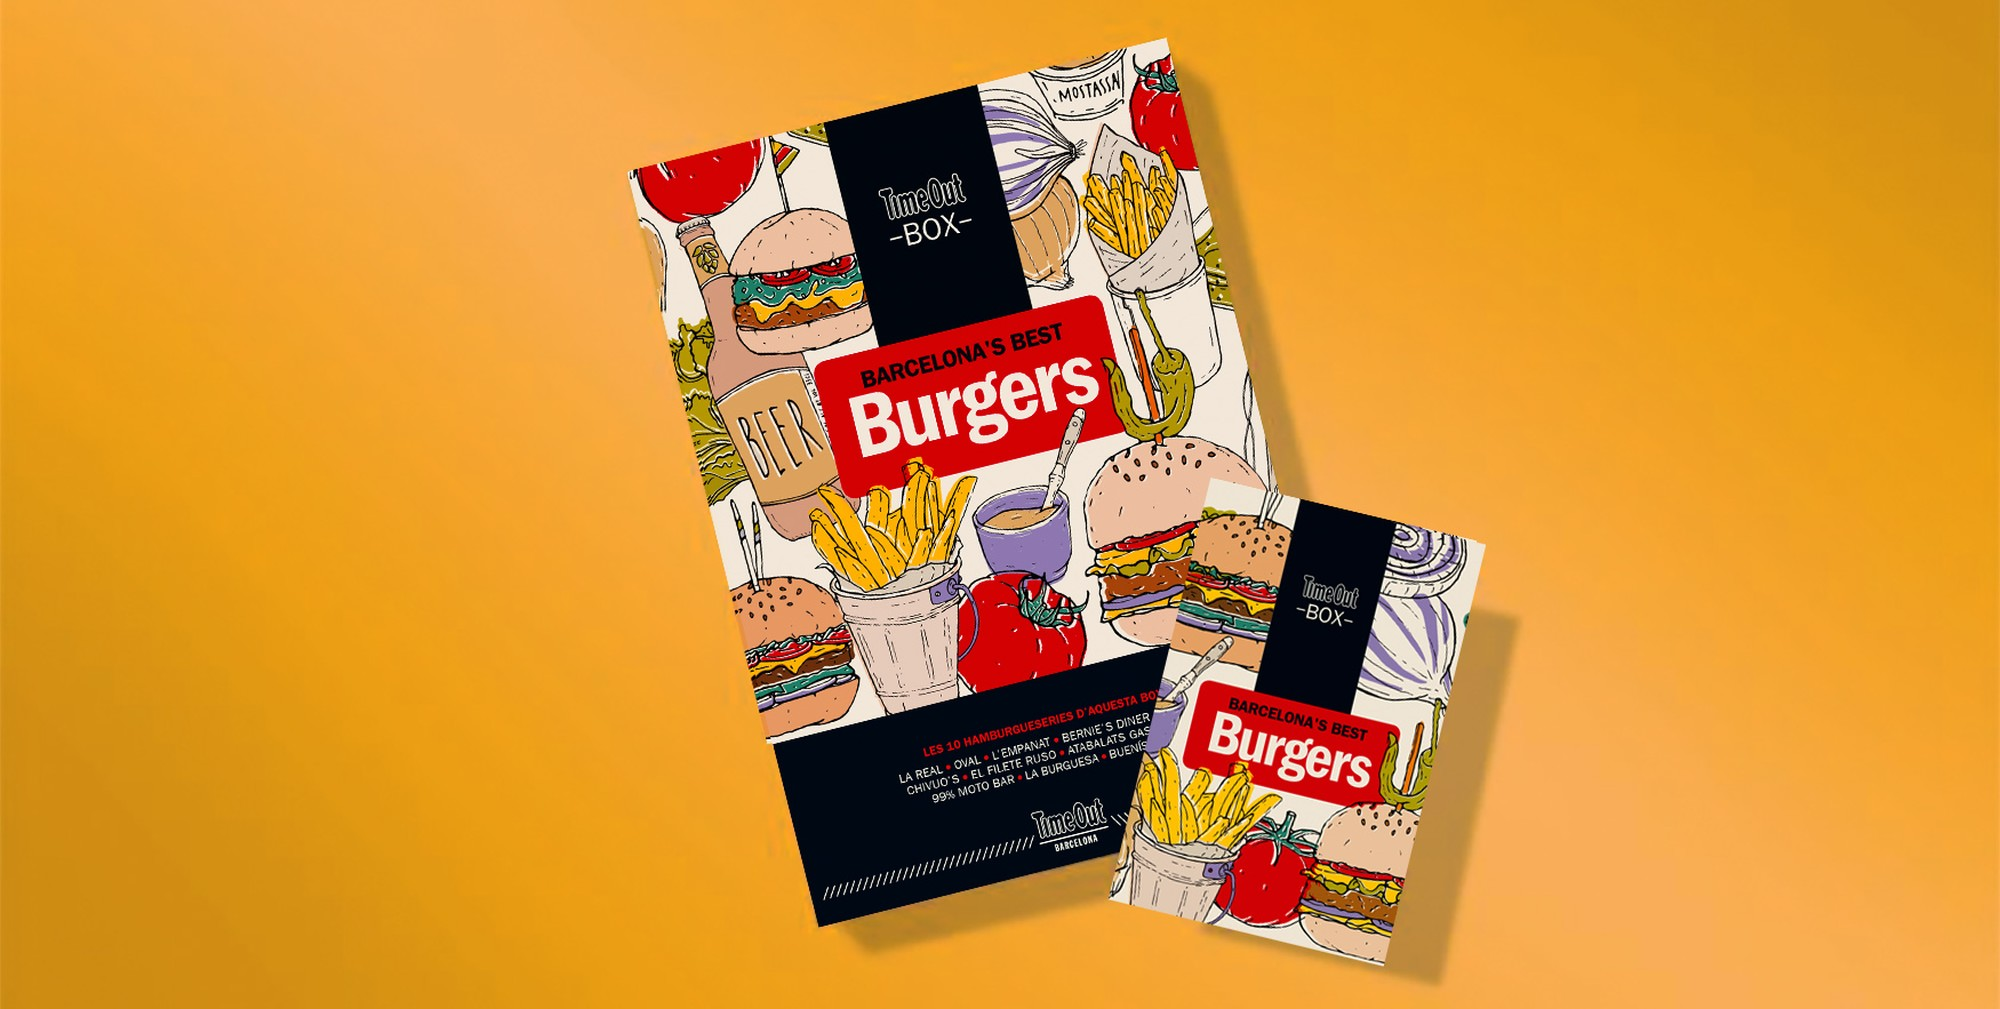 Time Out Box | Burgers 50%